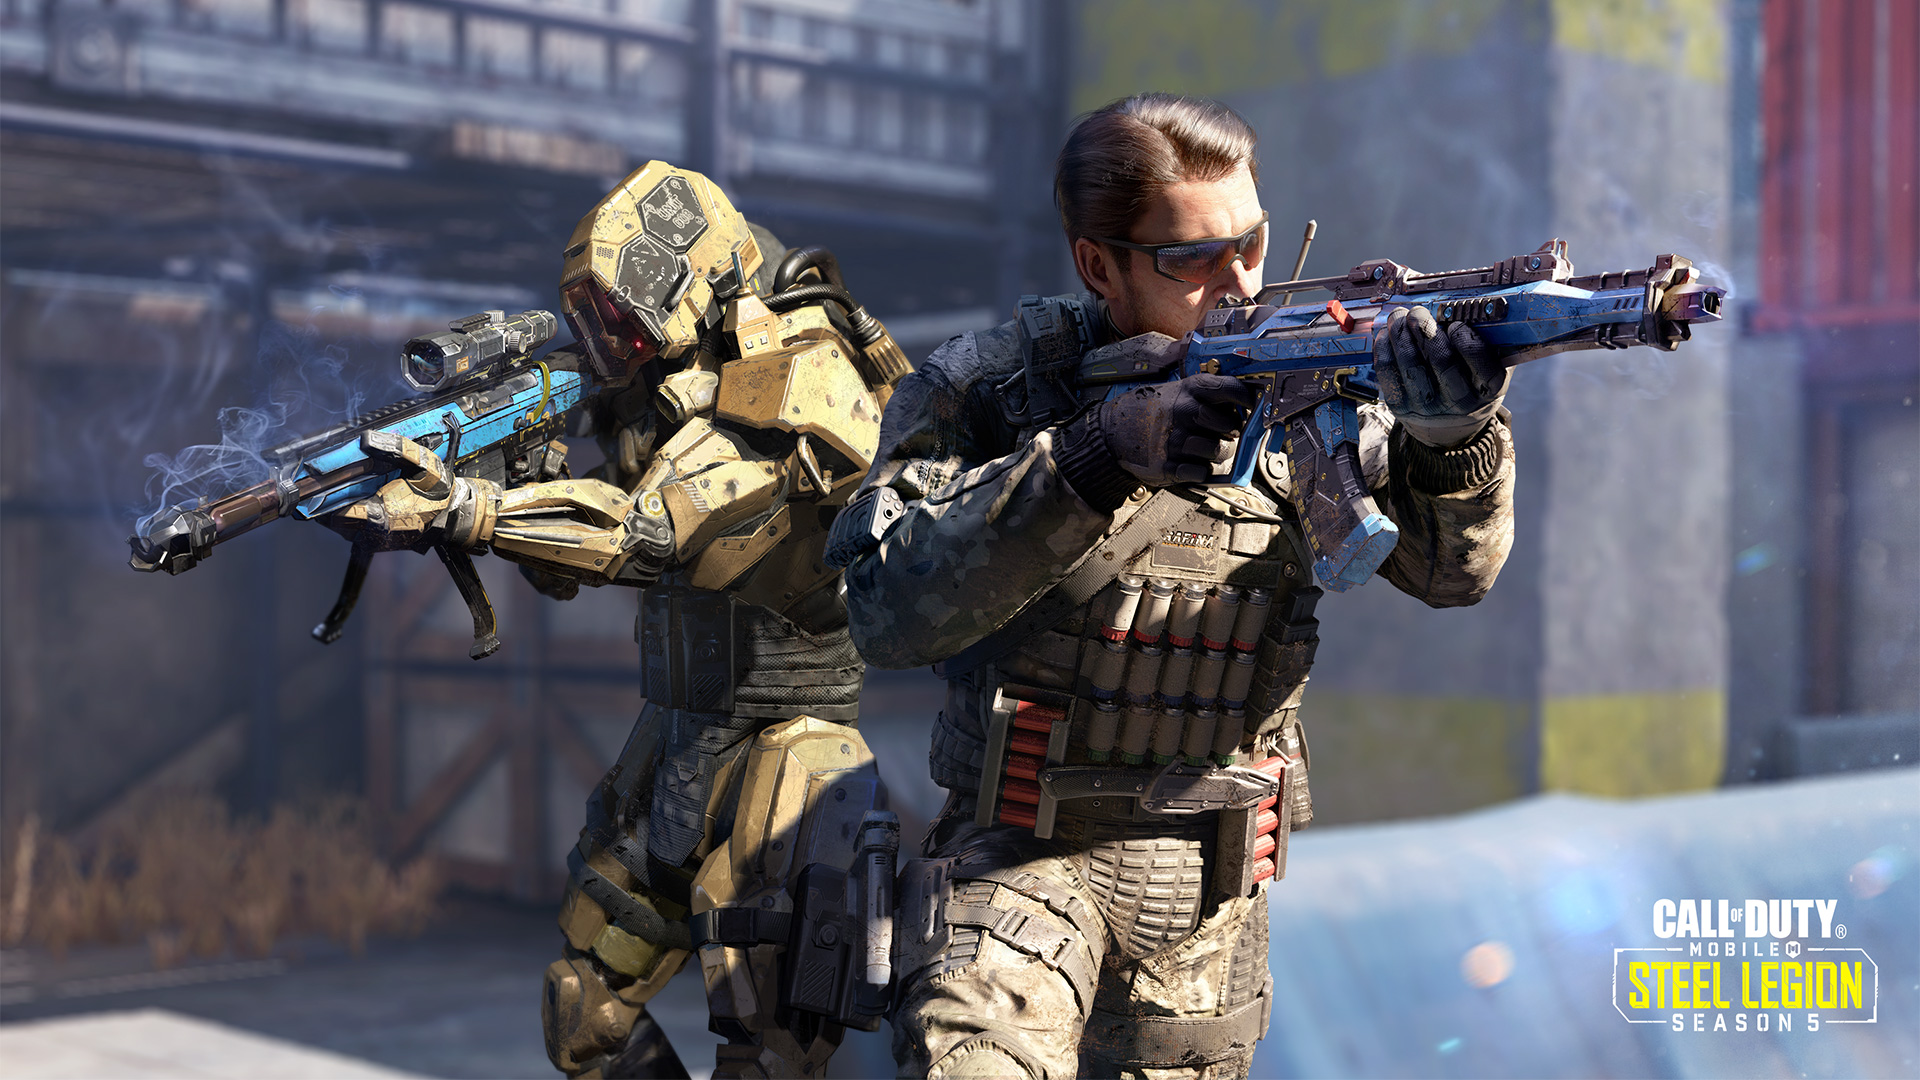 This Week in Call of Duty - March 30 - Image 4